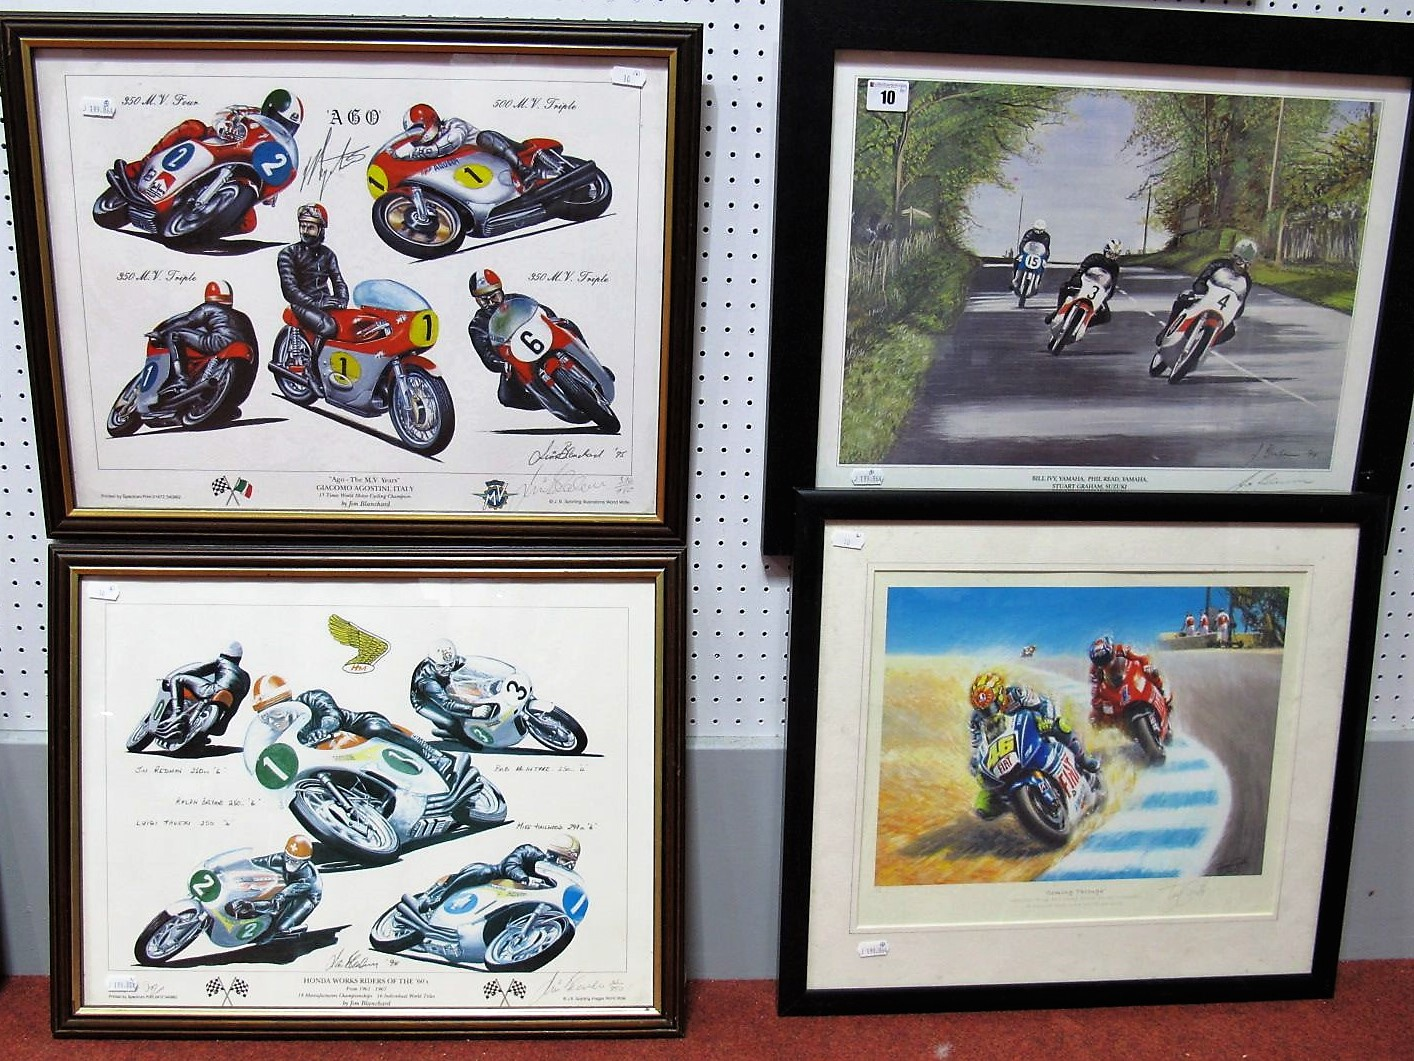 Lot 10 - Four Motorcycle Prints- '1967 Ulster GP' After Jim Blachard/ Honda Works Riders of the 60's, after